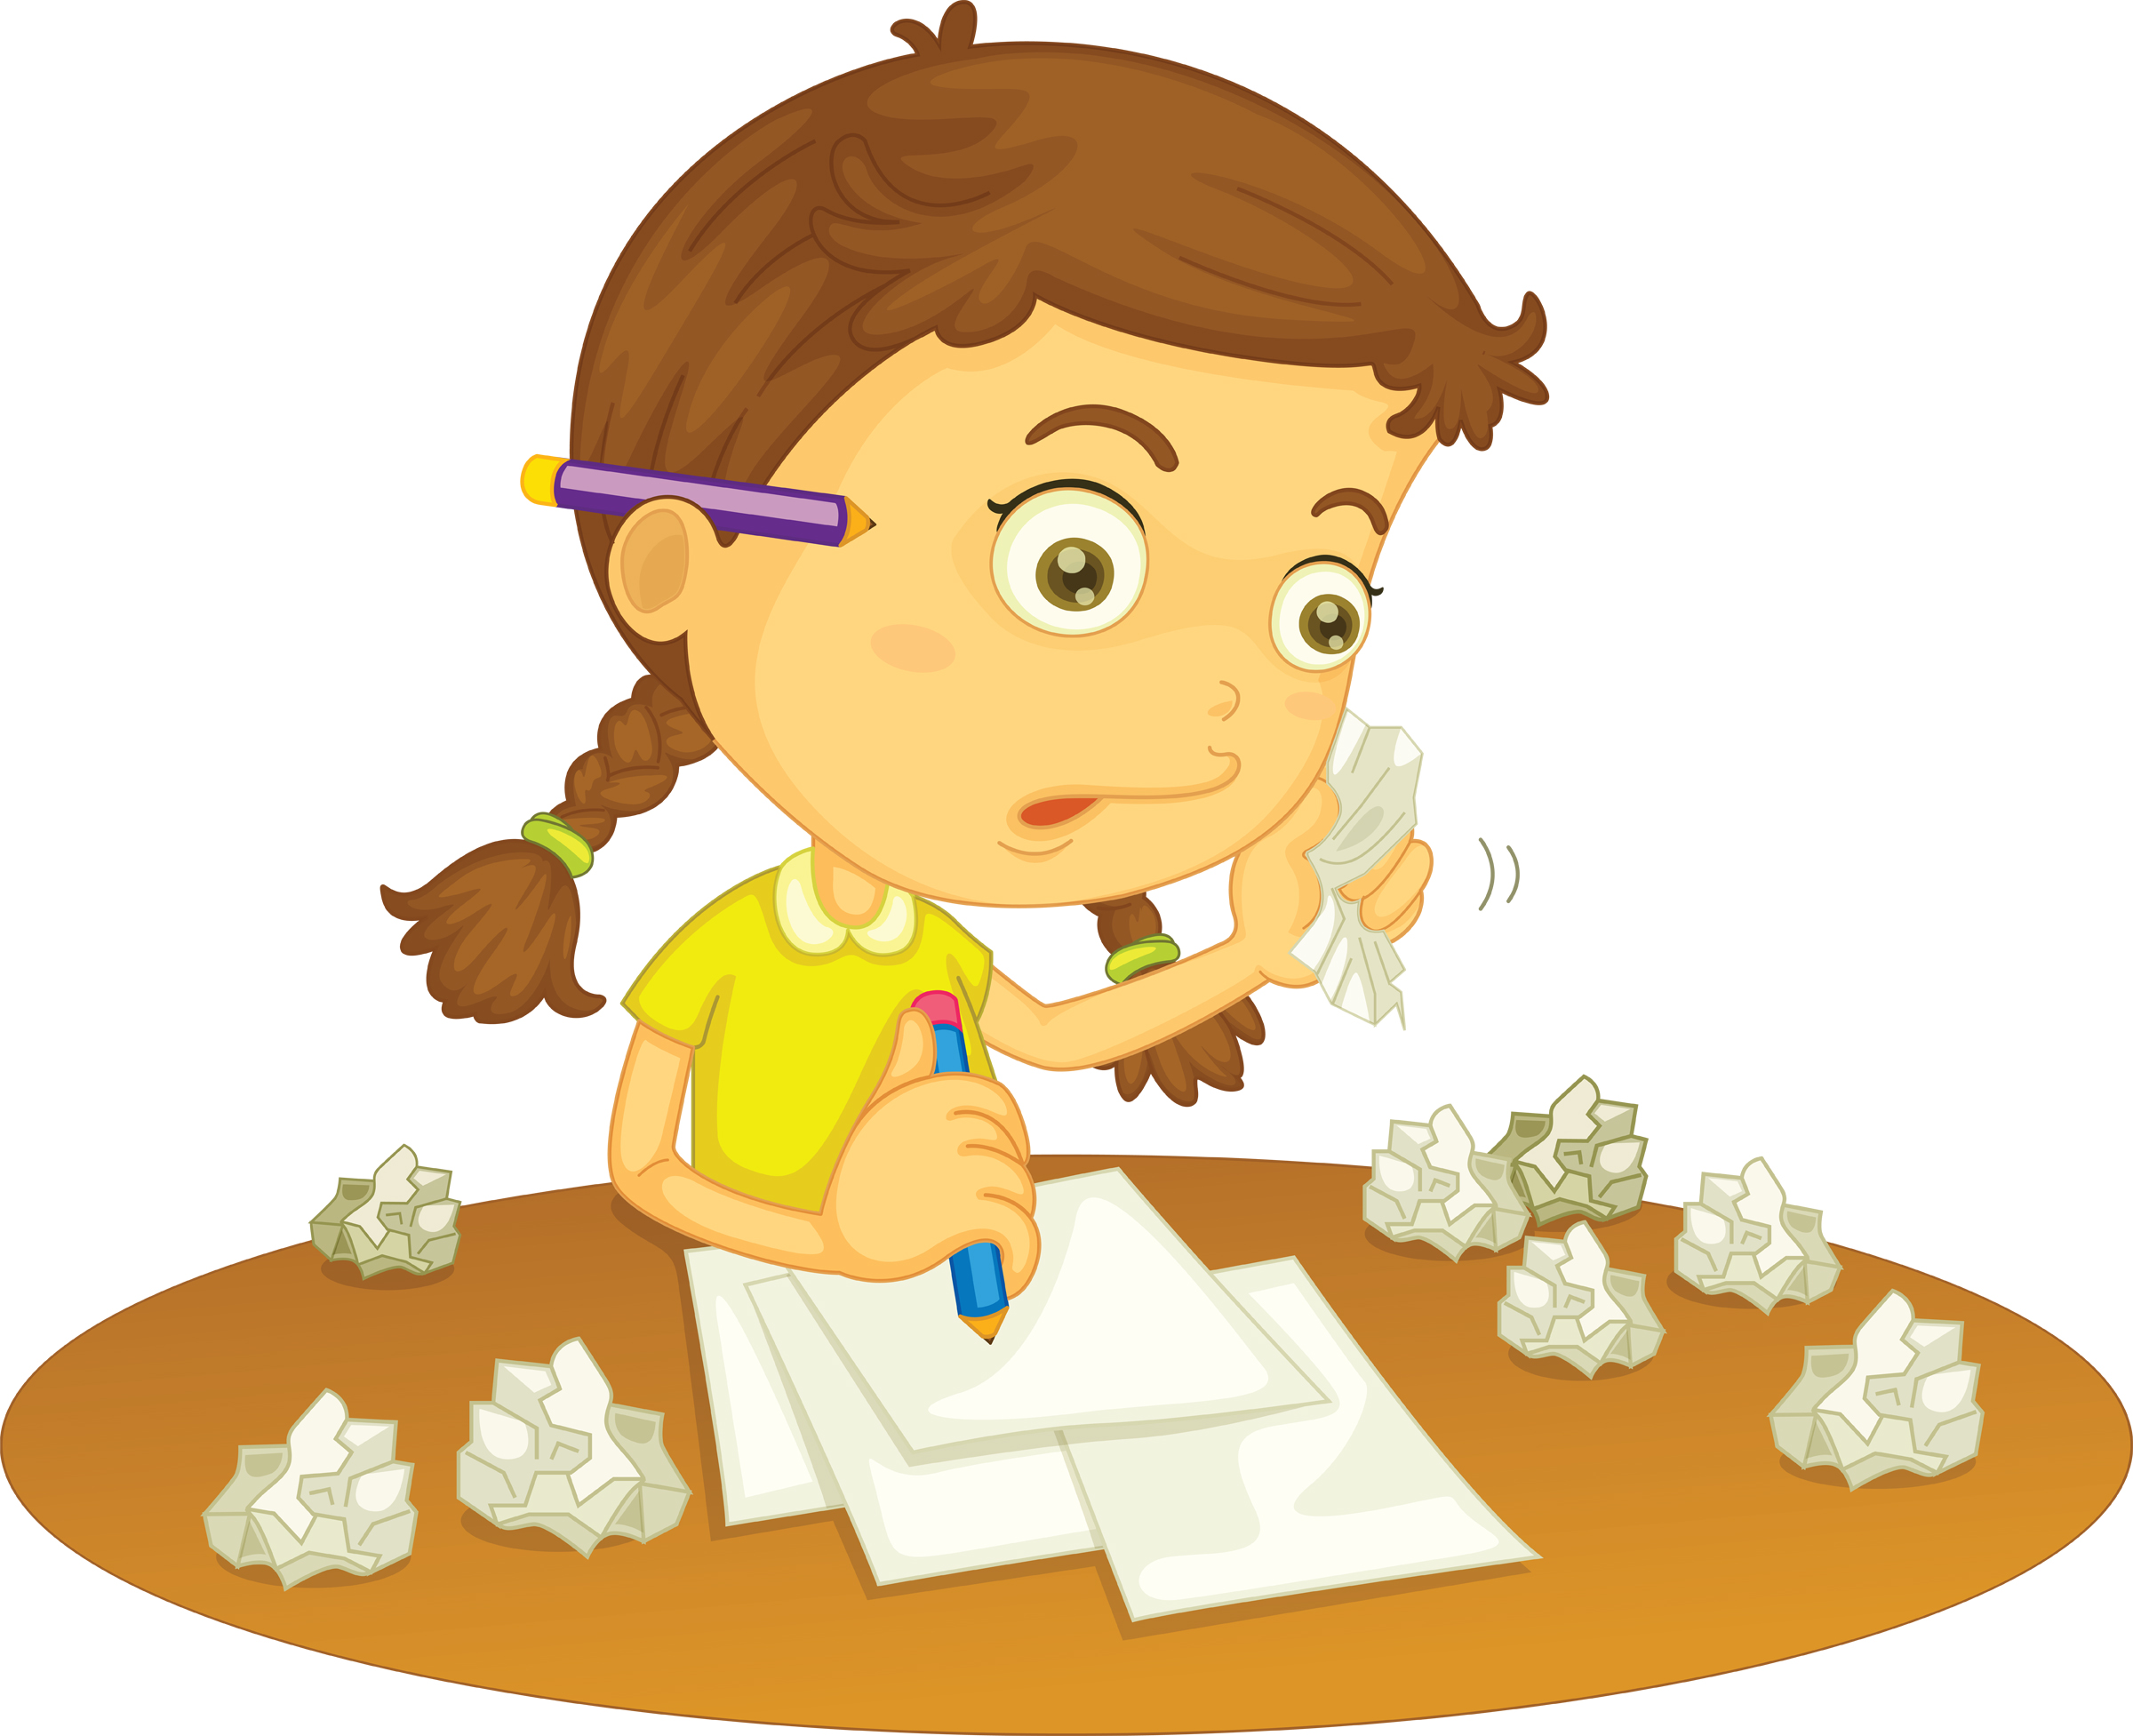 A girl doing her homework with crumbled pieces of paper on her desk.